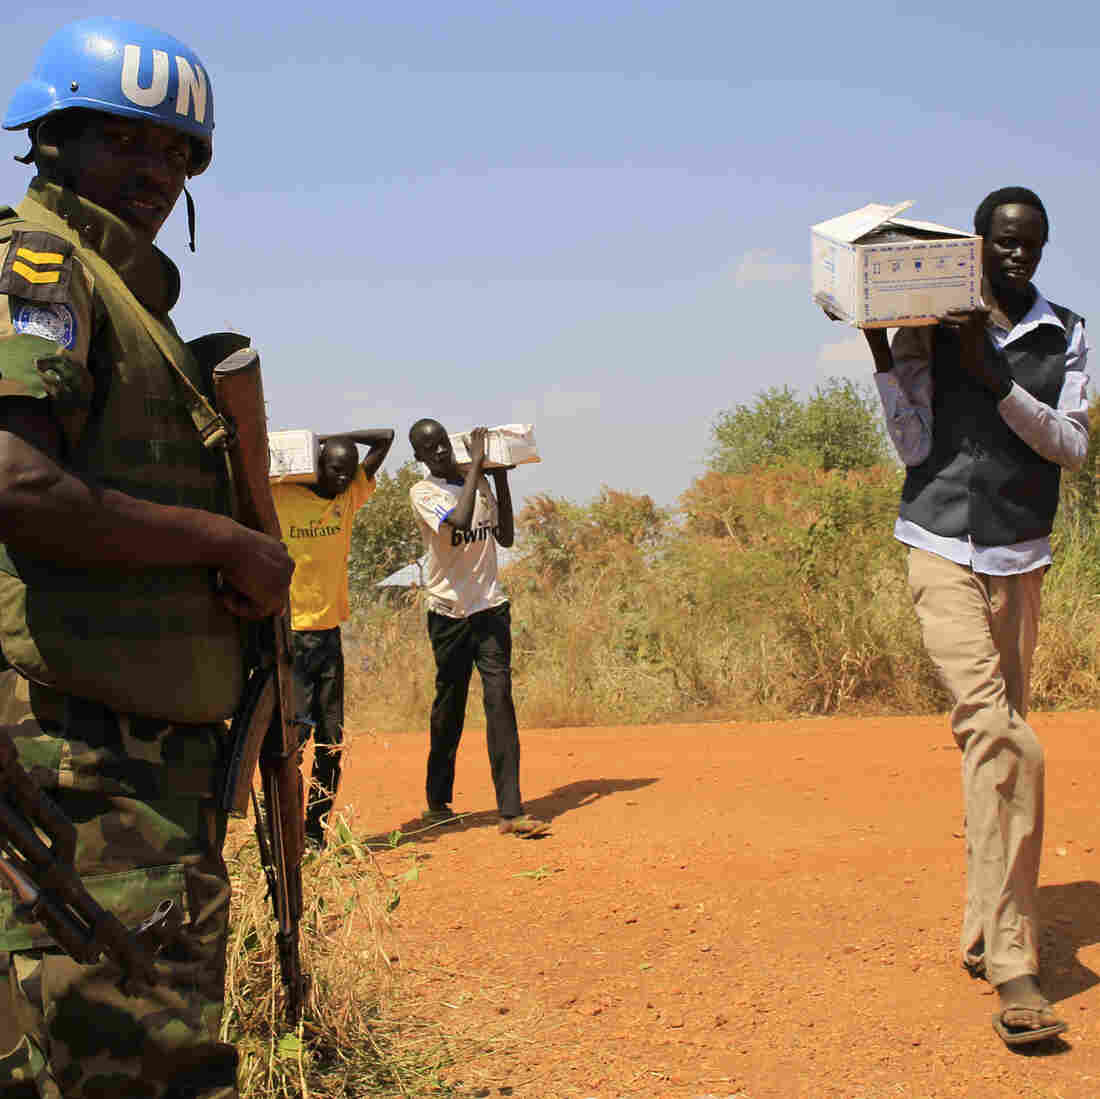 Troops sent to South Sudan by the U.N. watch as men walk to a camp for refugees near Juba, the nation's capital.